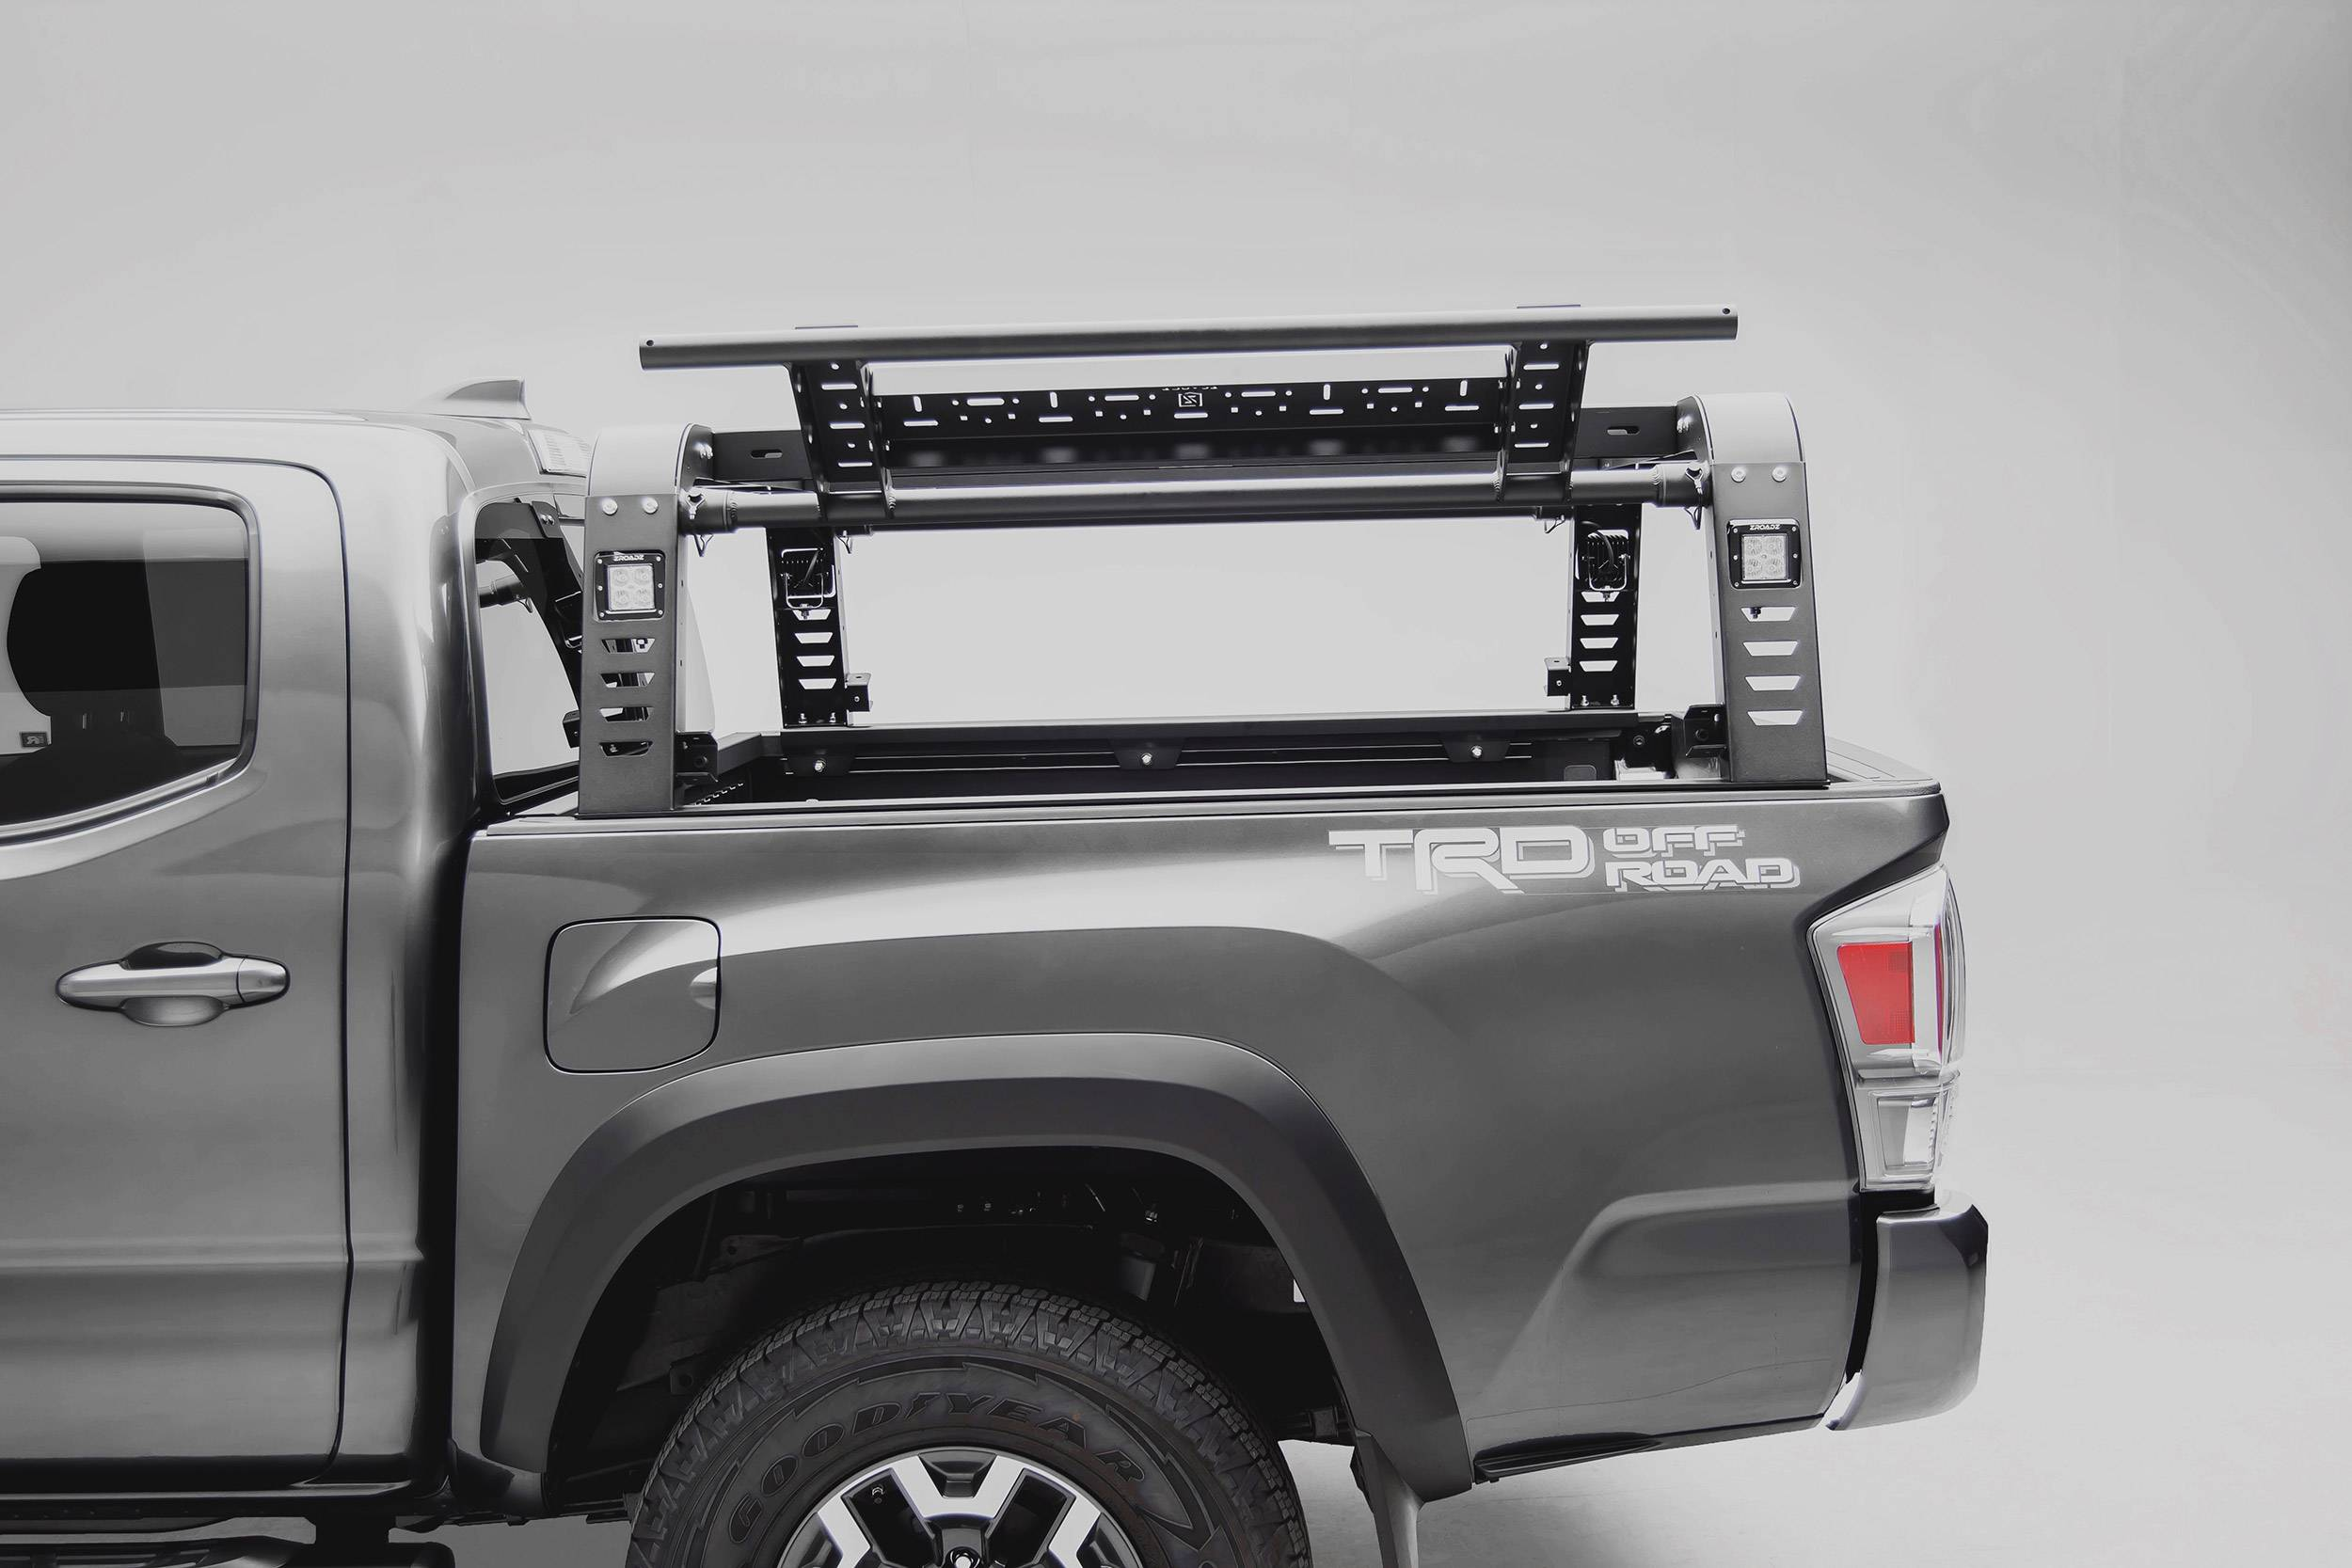 2016 2021 Toyota Tacoma Overland Access Rack With Side Gates With 4 3 Inch Zroadz Led Pod Lights Pn Z839101